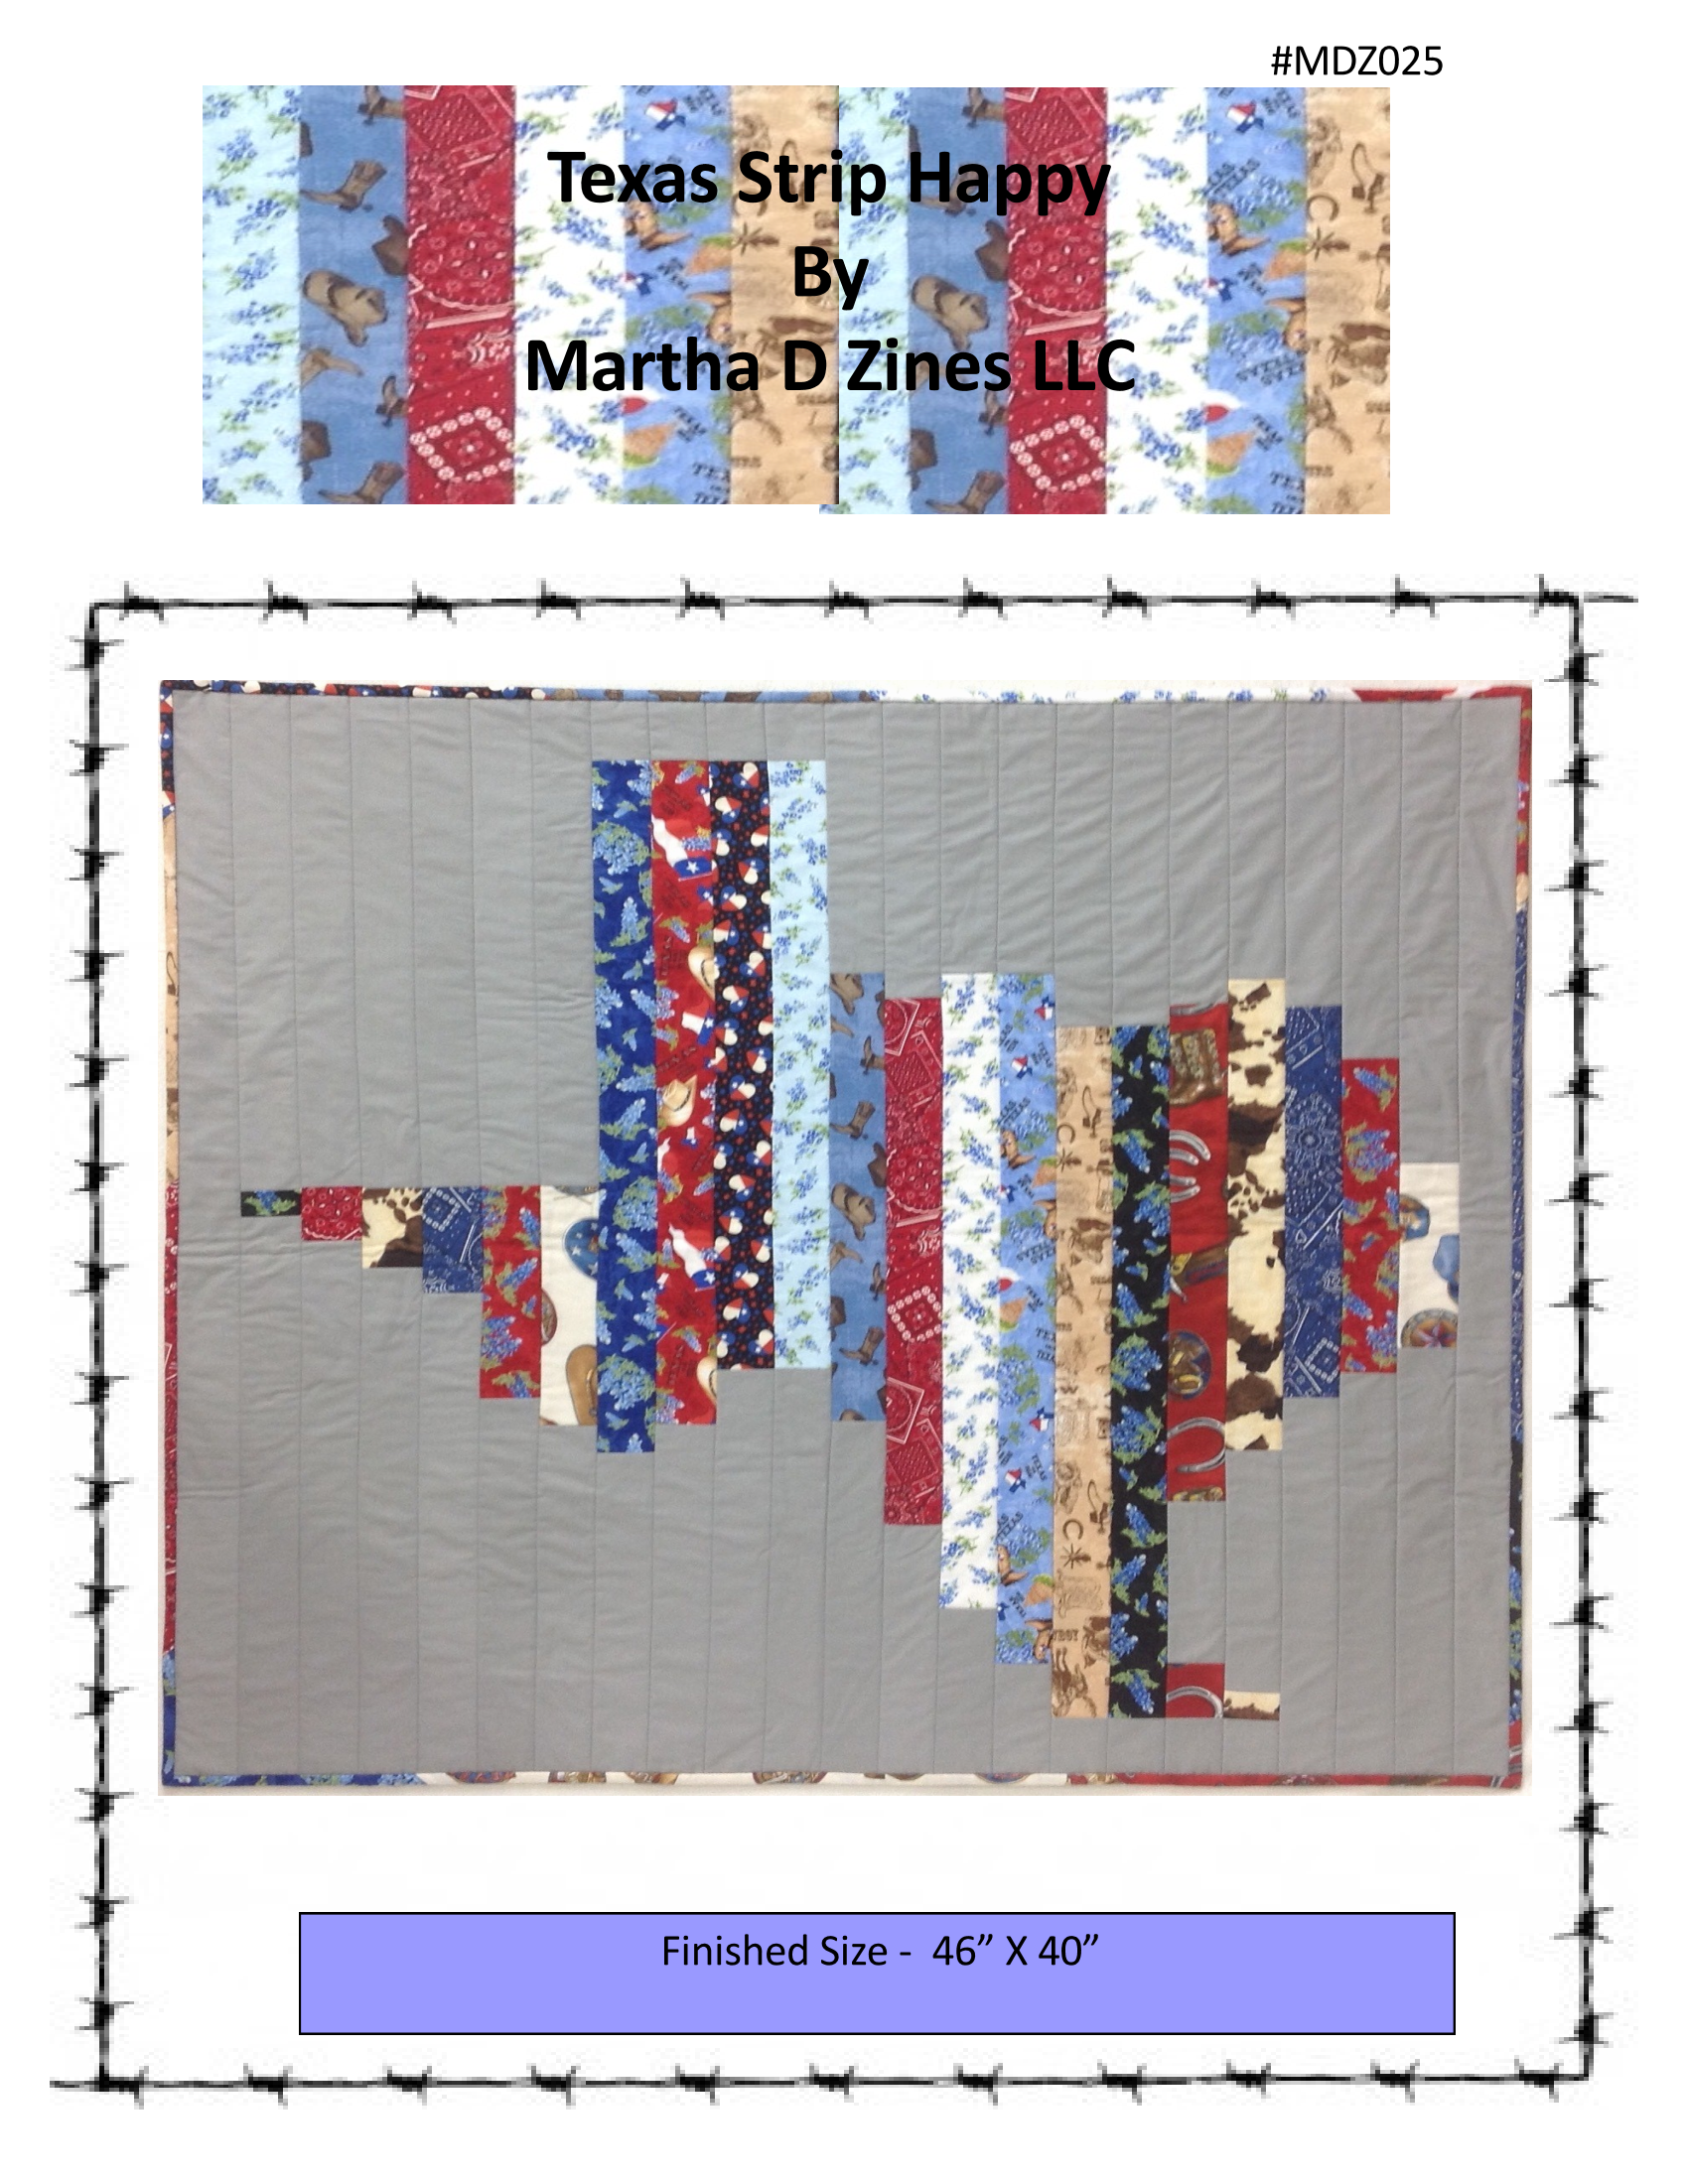 Texas Strip Quilt Pattern TXS-MDZ025-PAT